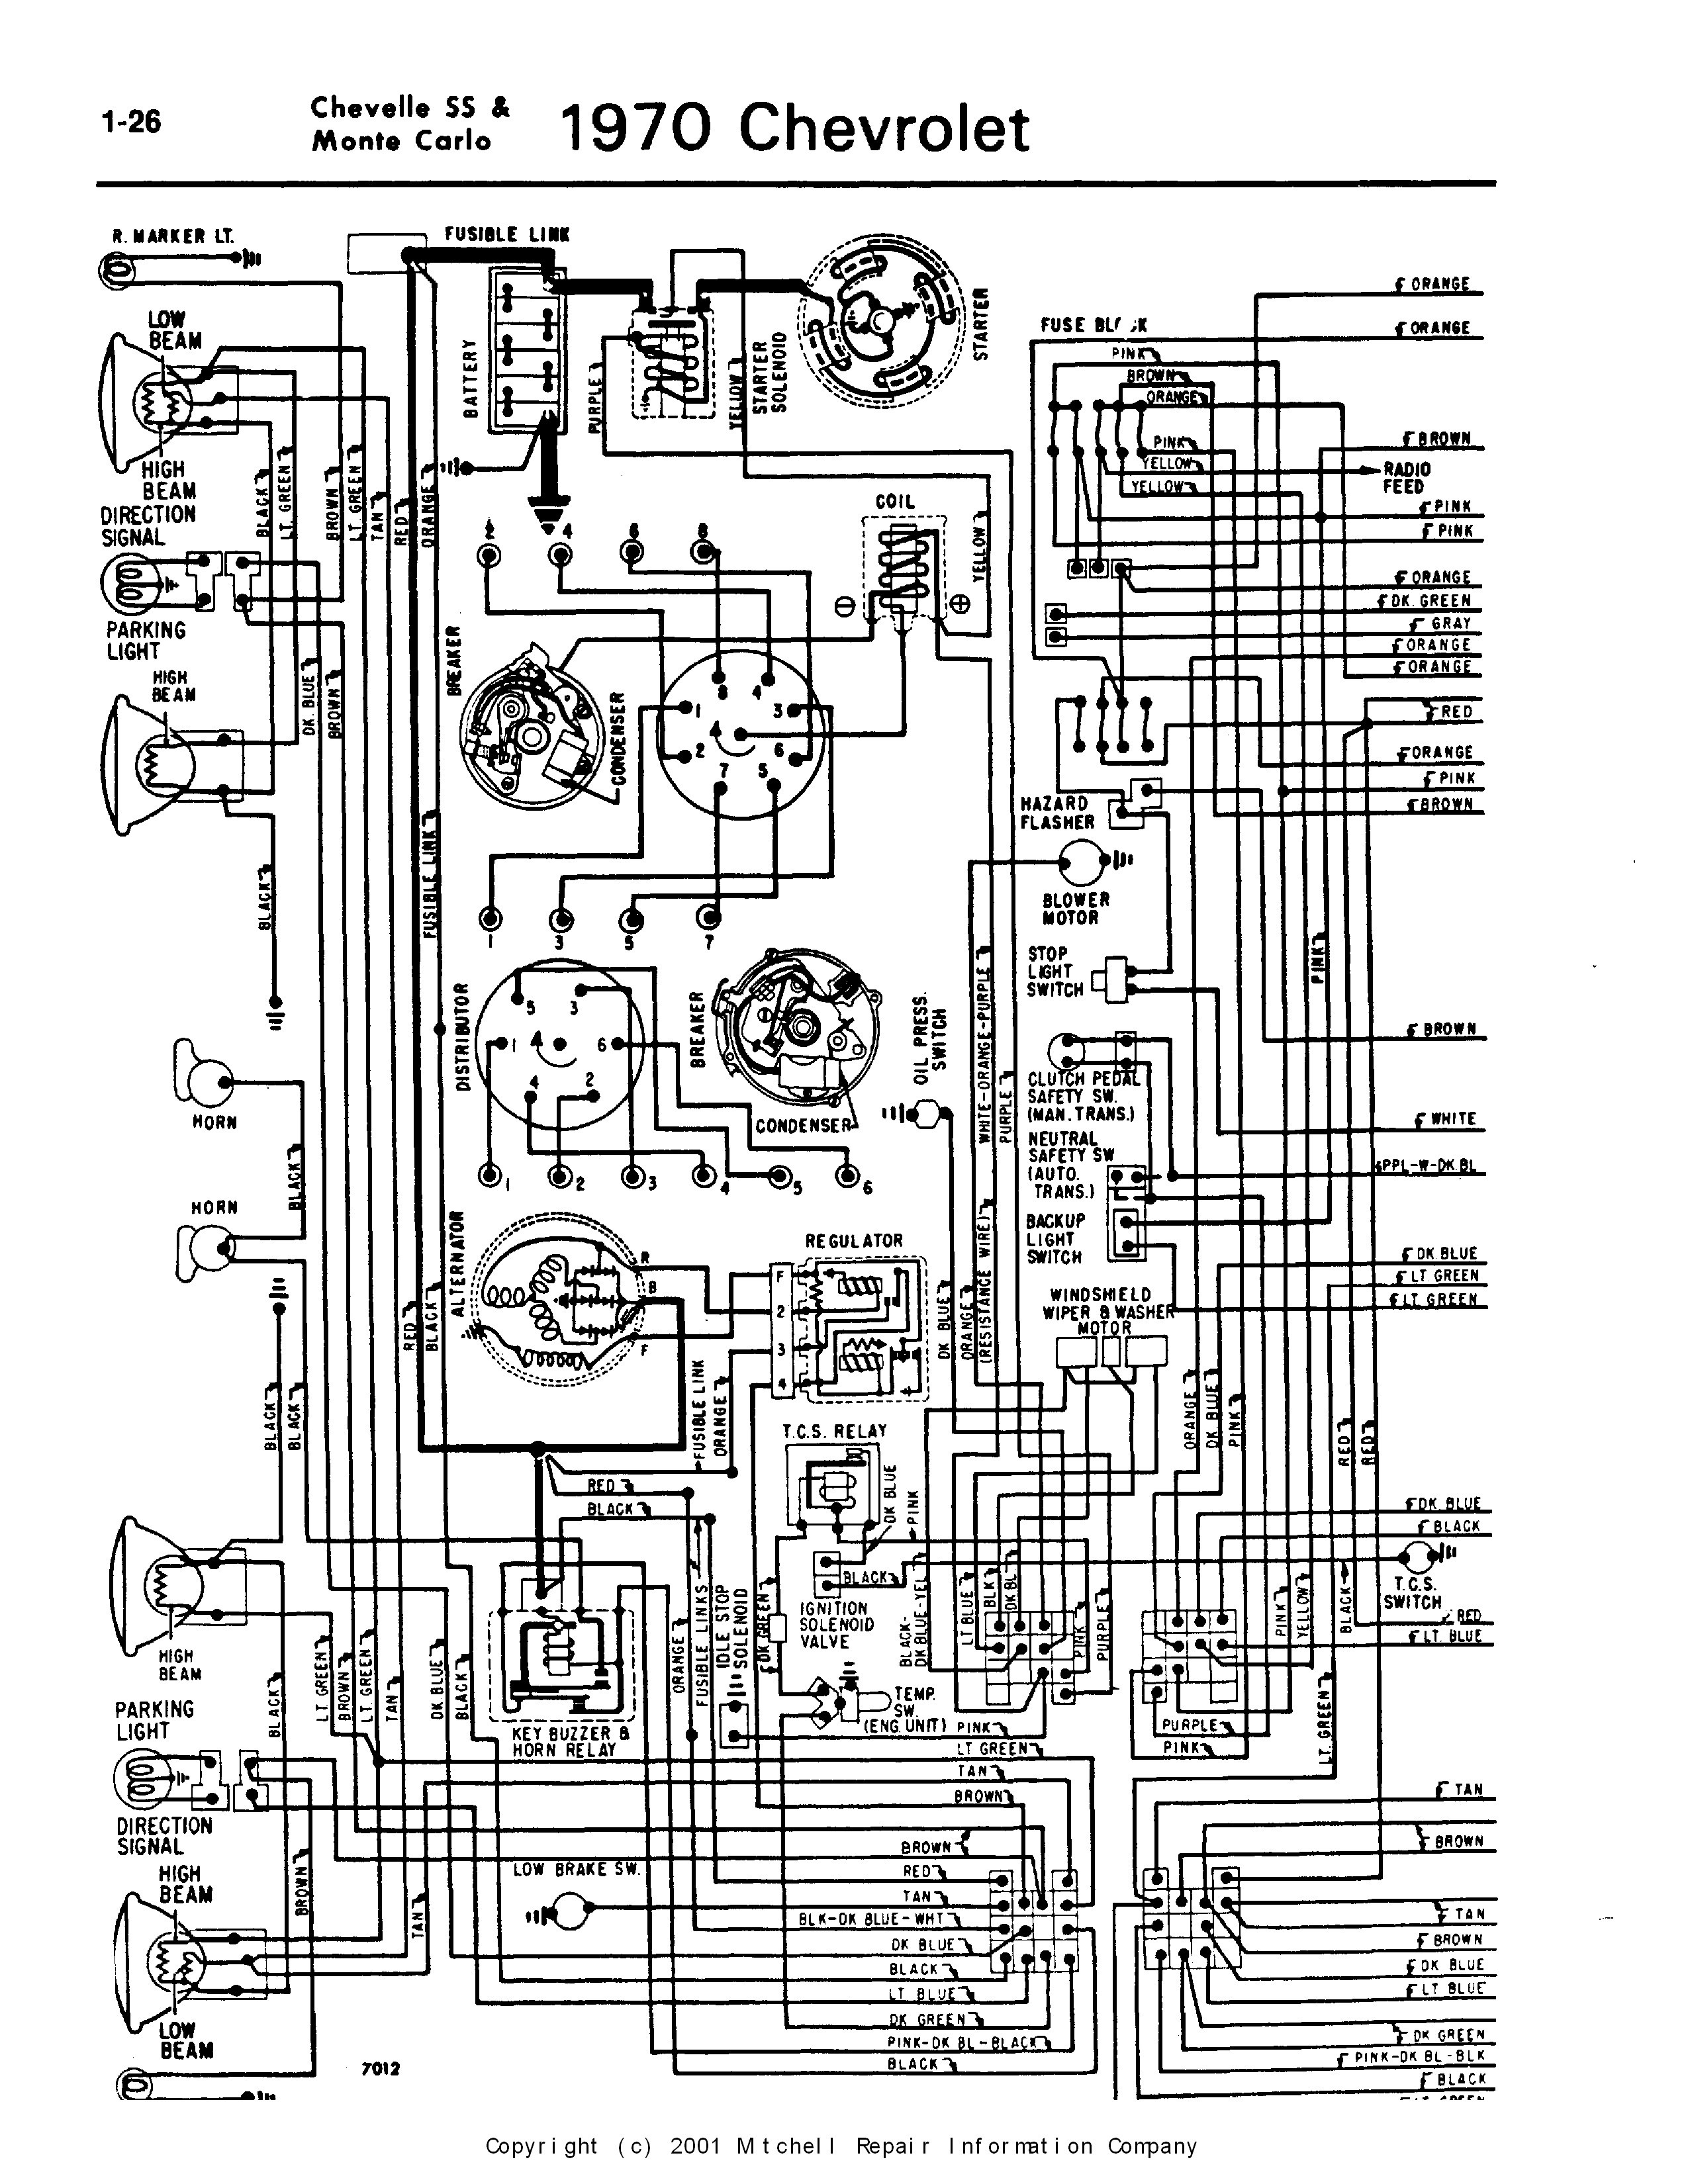 1972 chevelle wiring harness wiring diagram 1970 Chevelle Wiring Harness